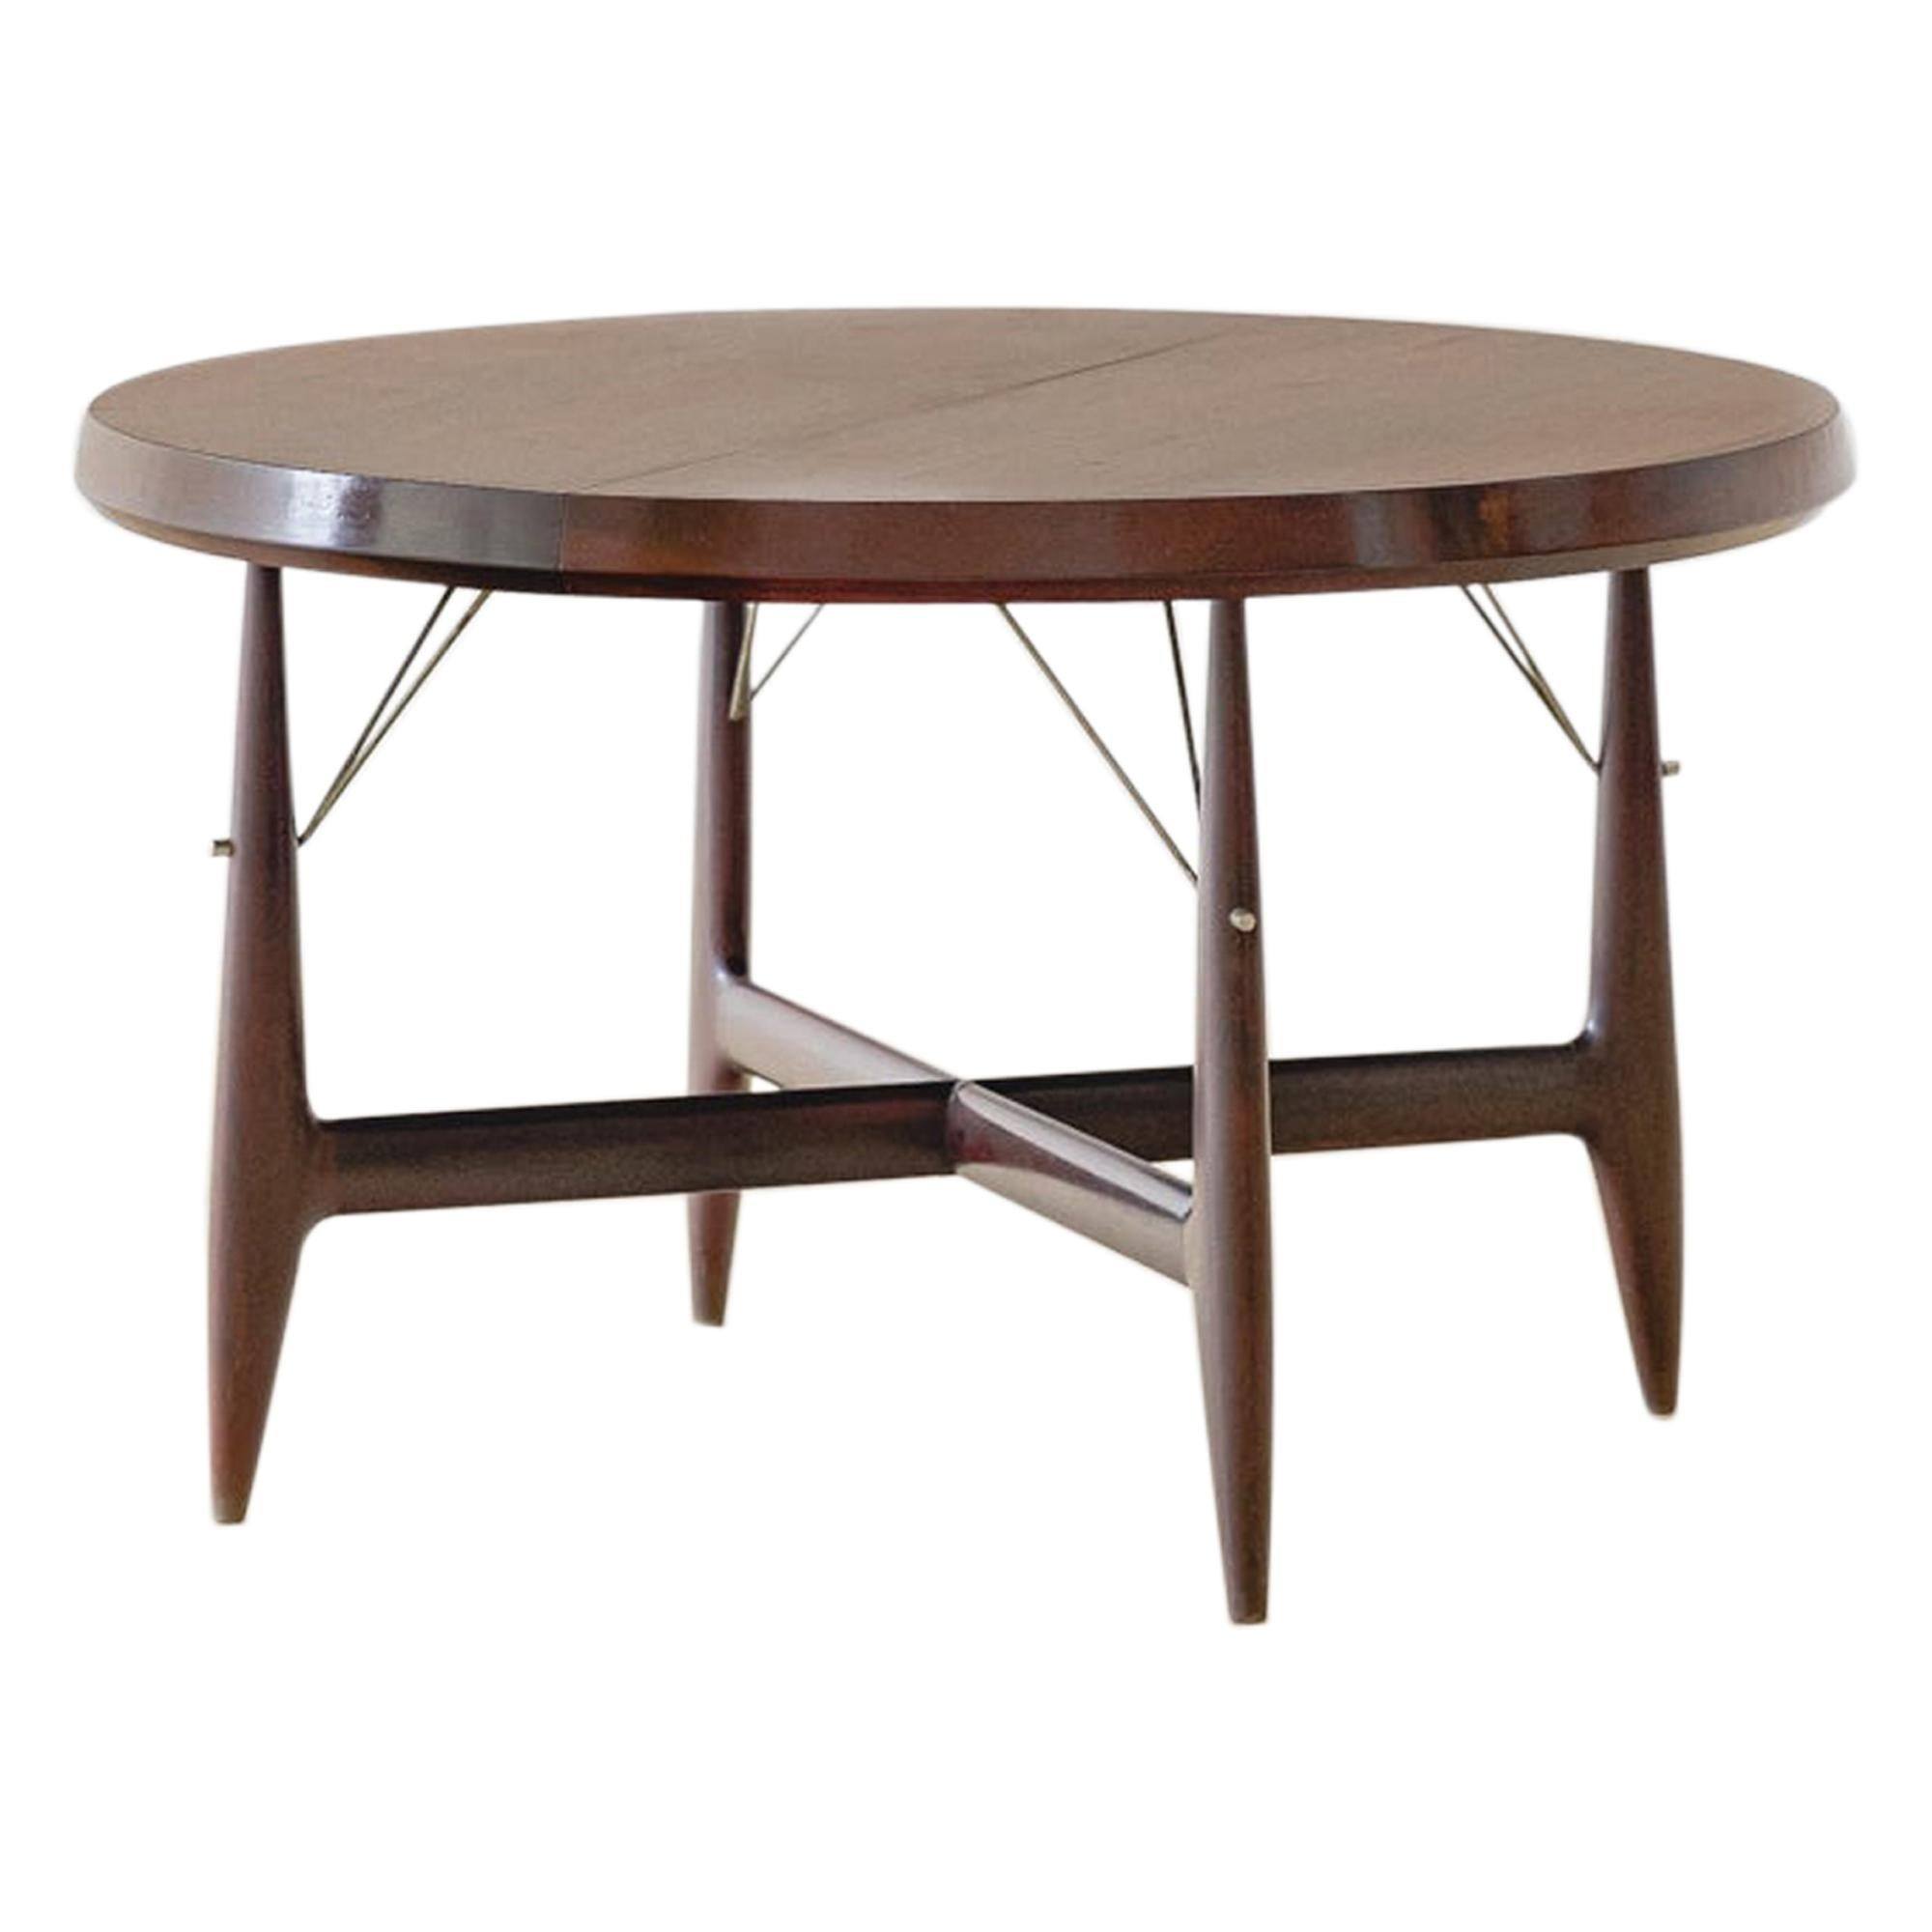 Stella Round Expandable Table by Sergio Rodrigues, Brazilian Midcentury Design